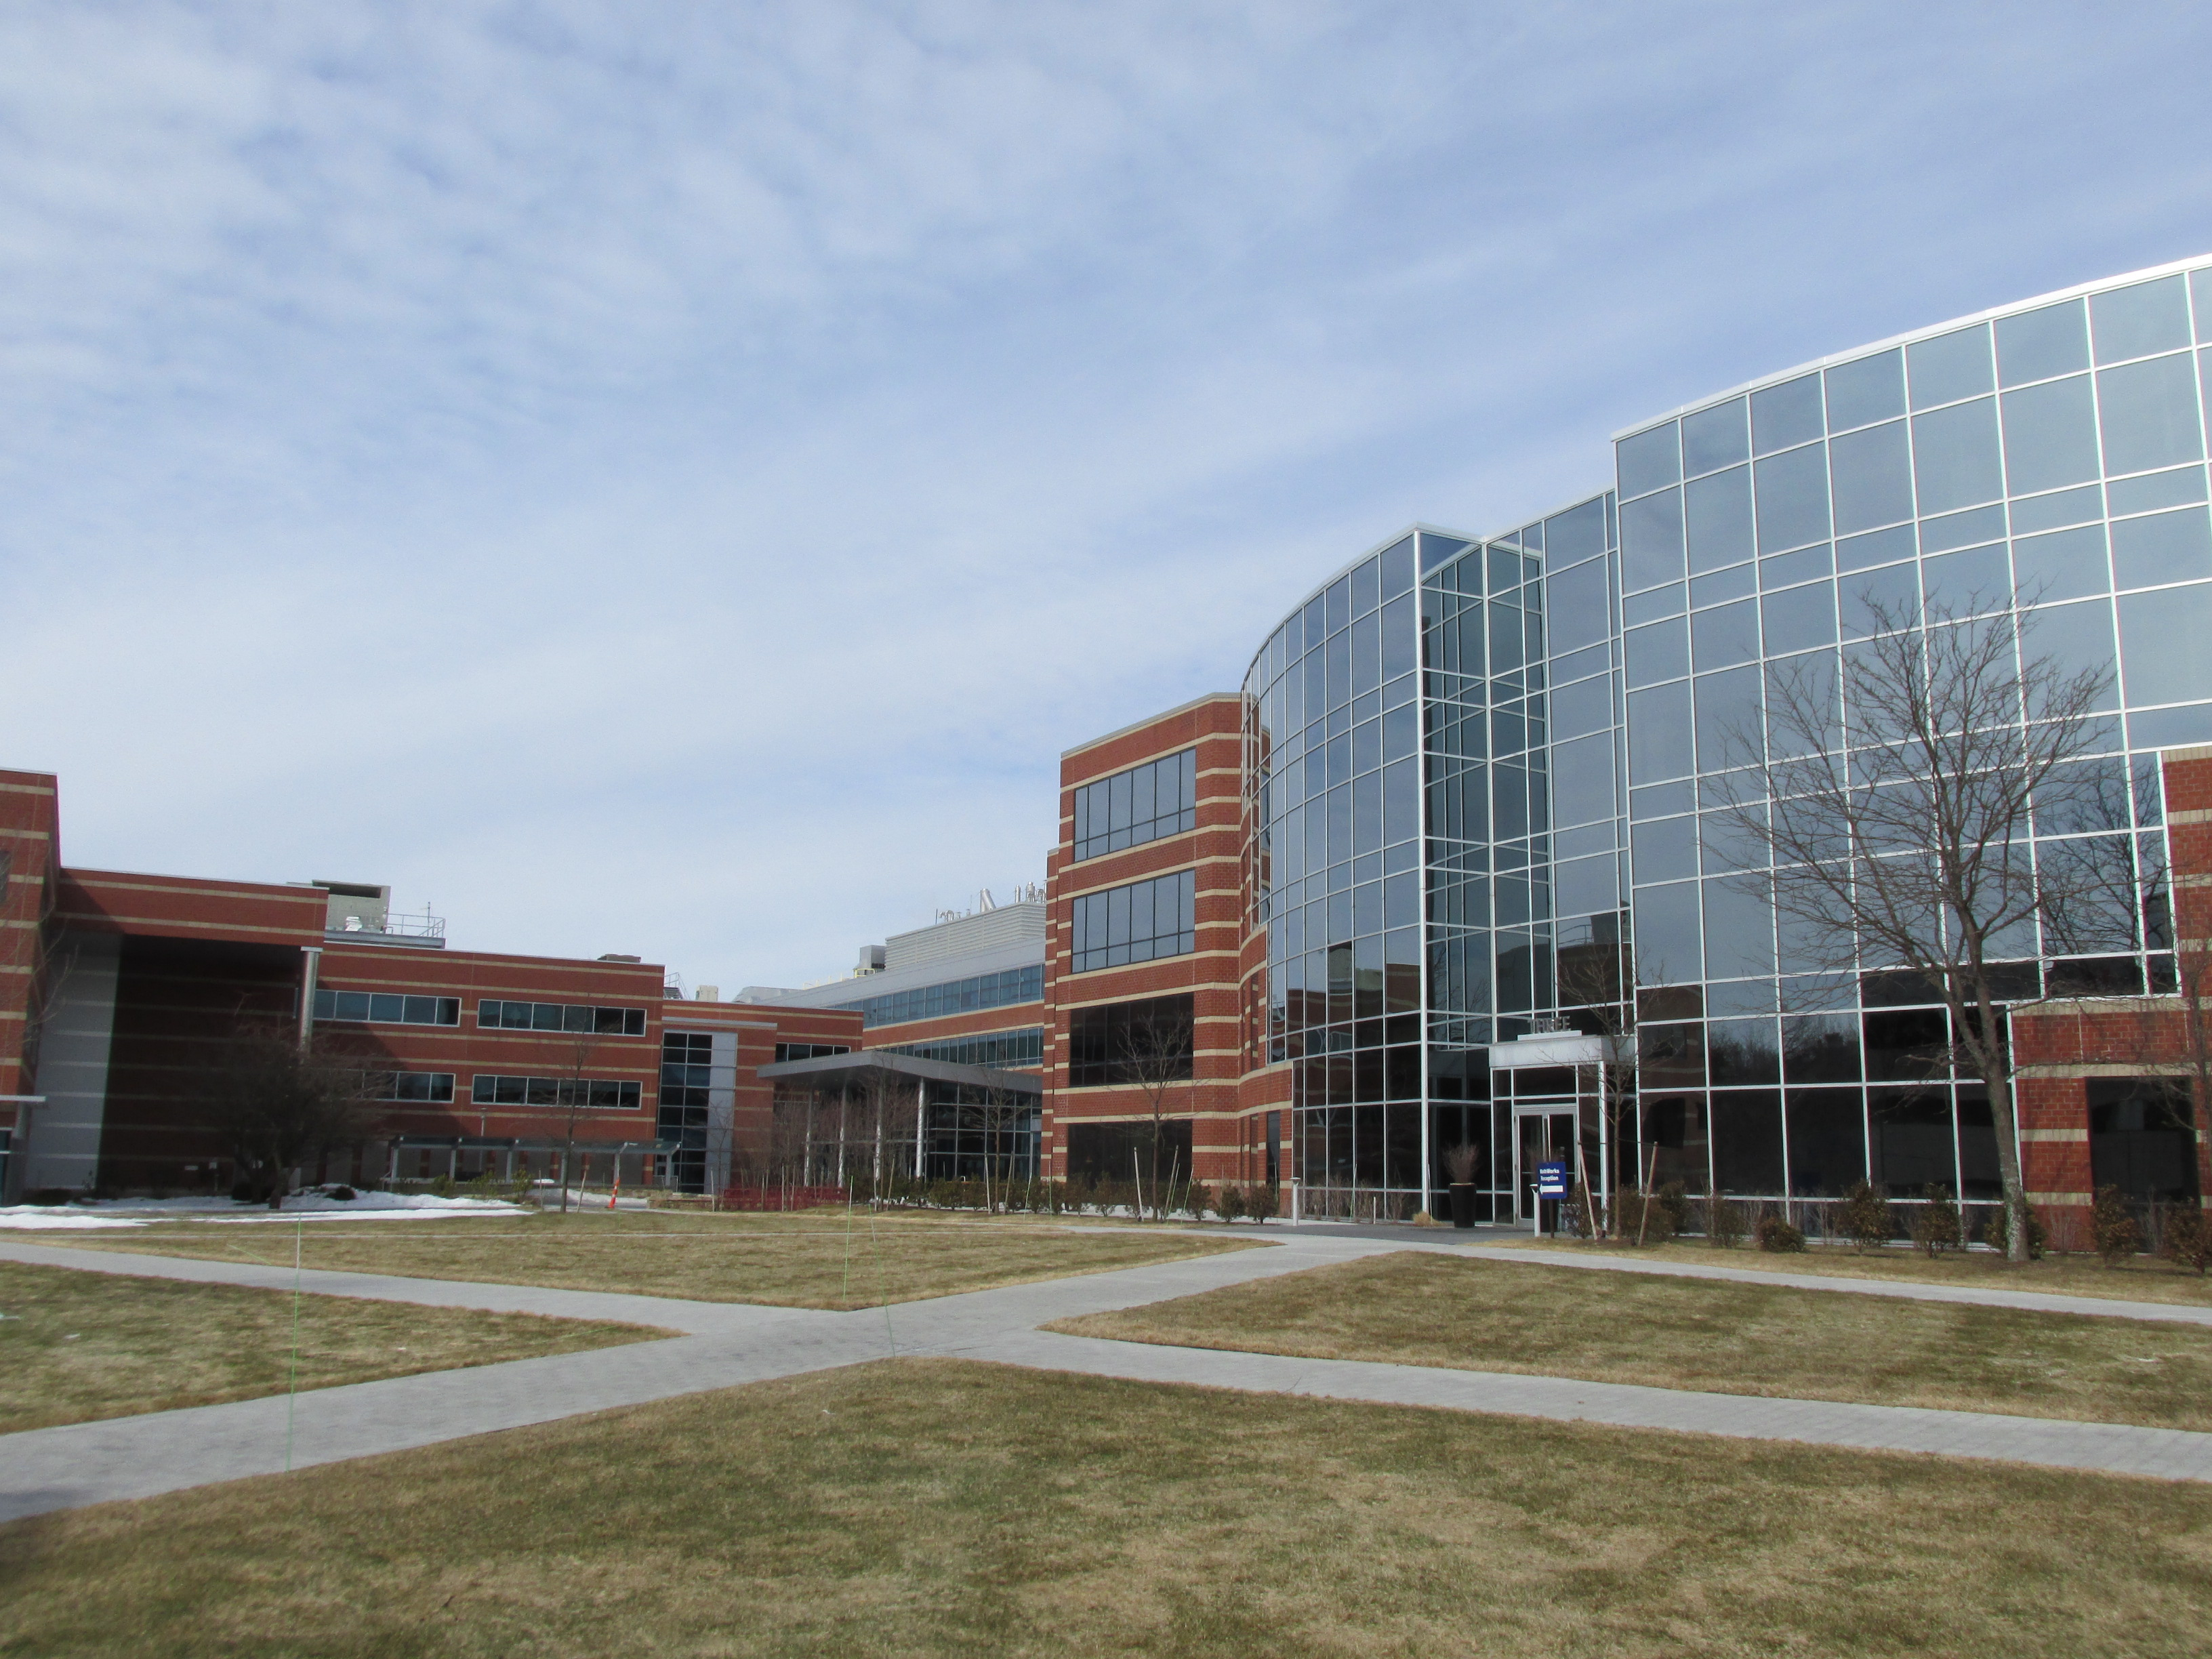 File:Main campus, MathWorks, Natick MA.jpg - Wikimedia Commons